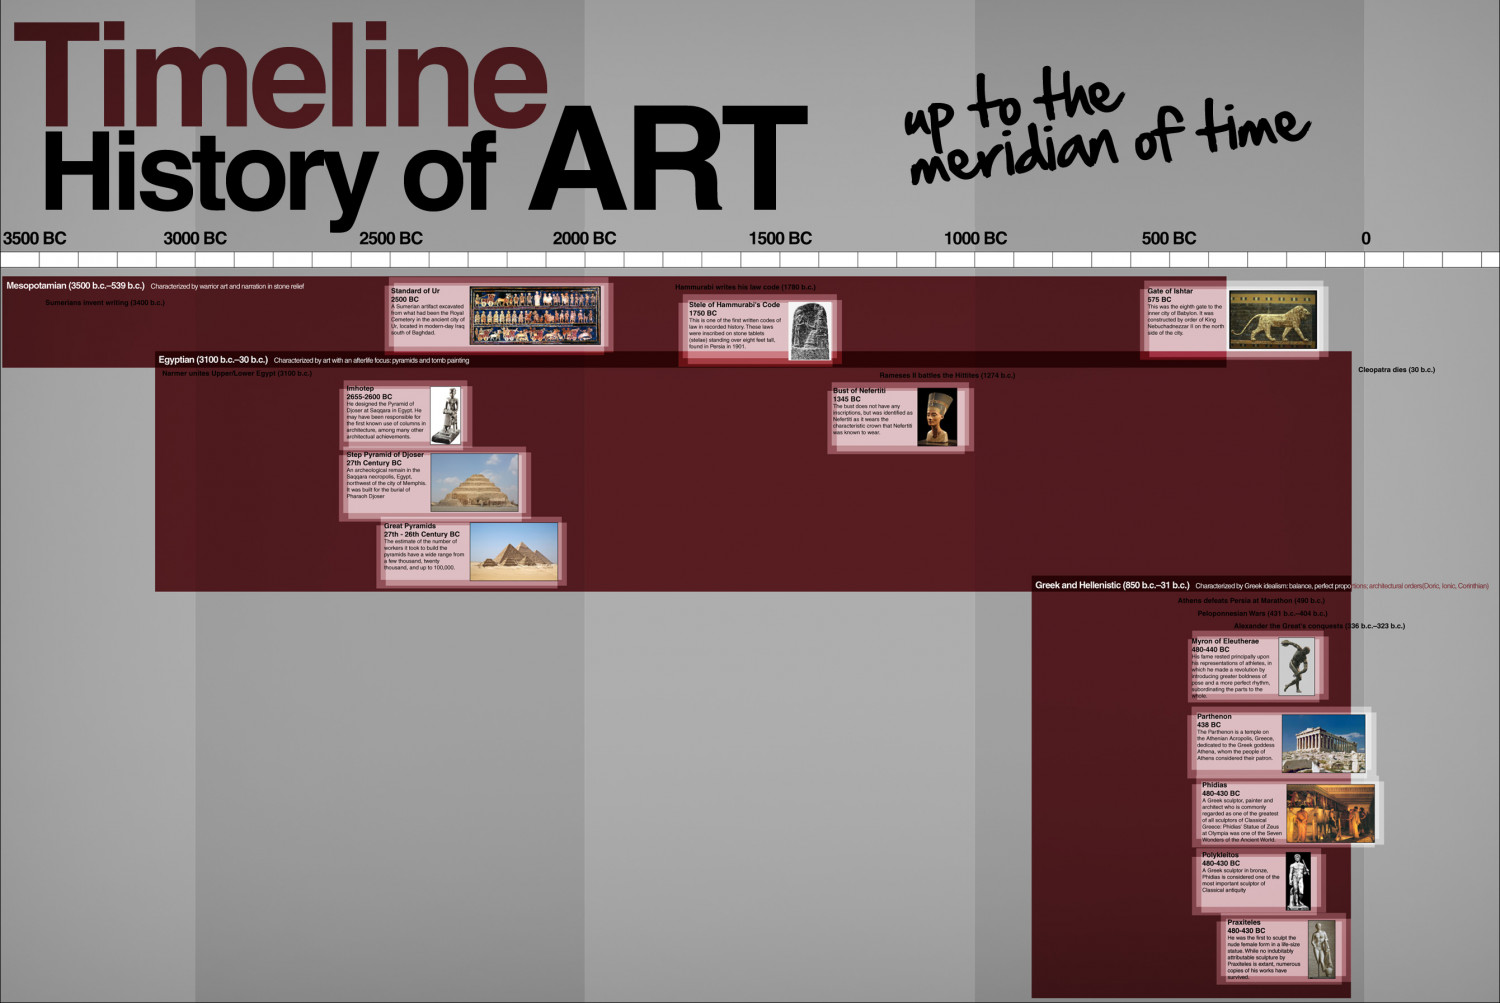 Timeline history of art visual timeline history of art infographic altavistaventures